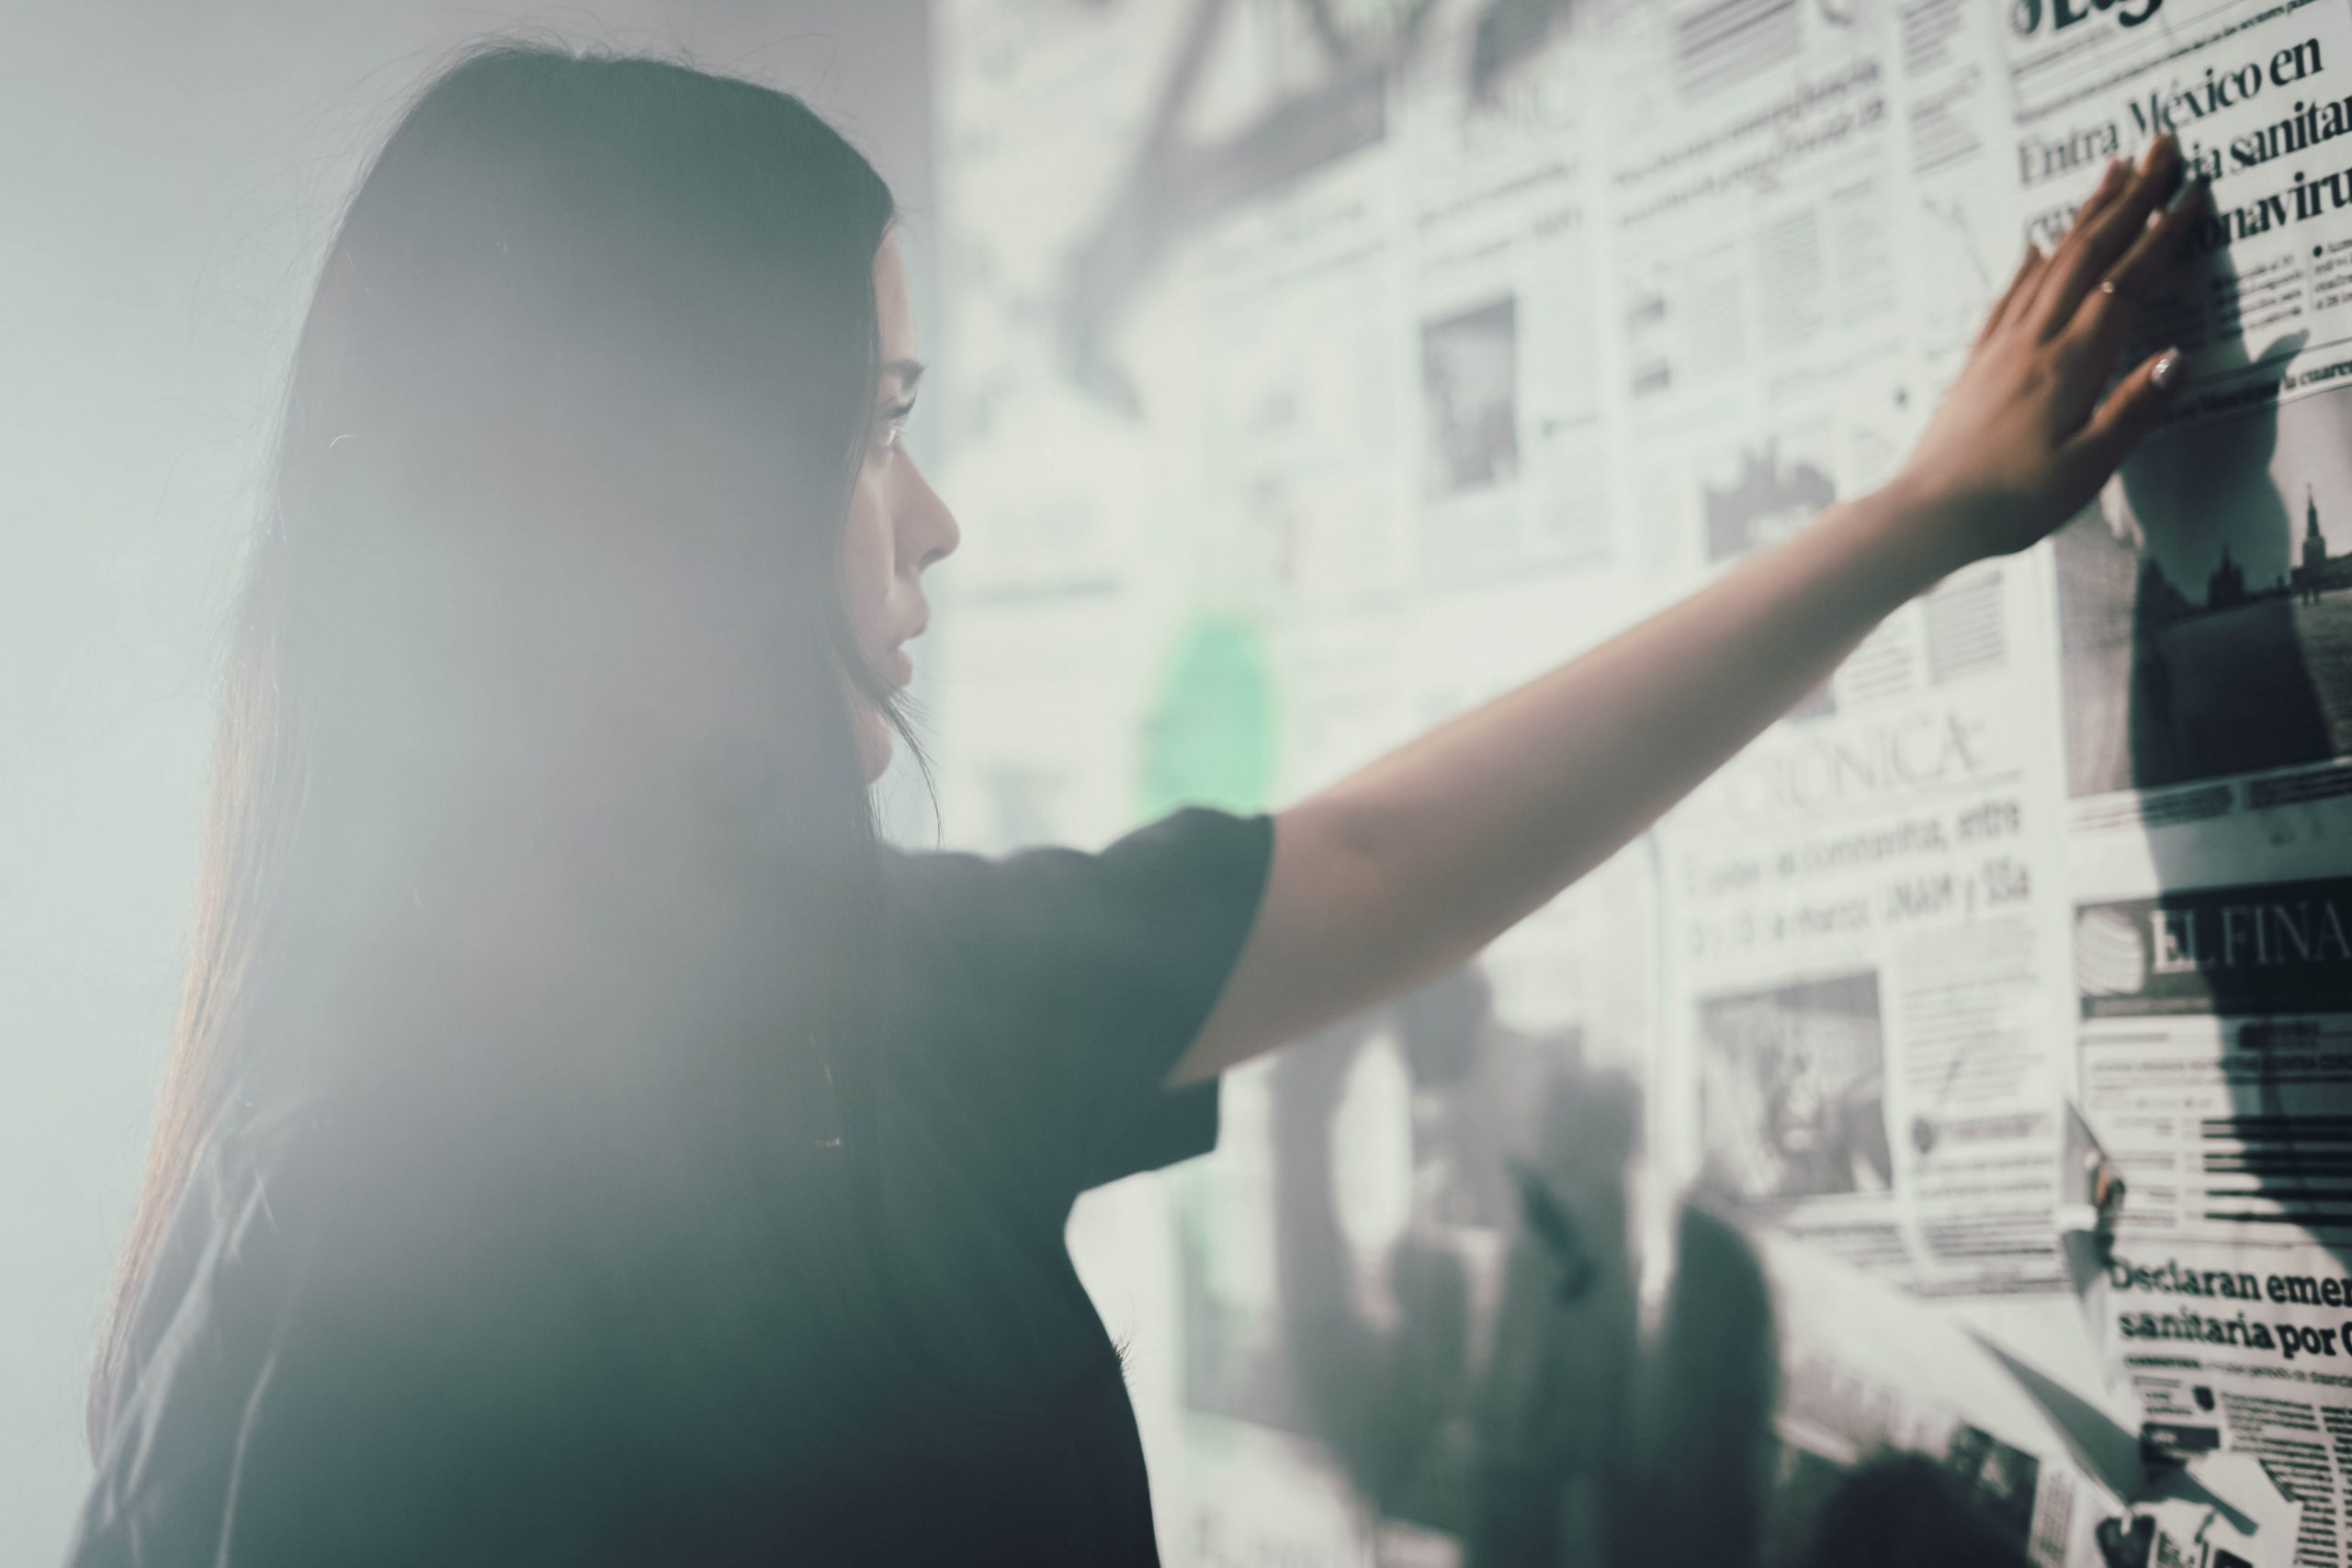 A woman stands in front of a wall of newspapers.